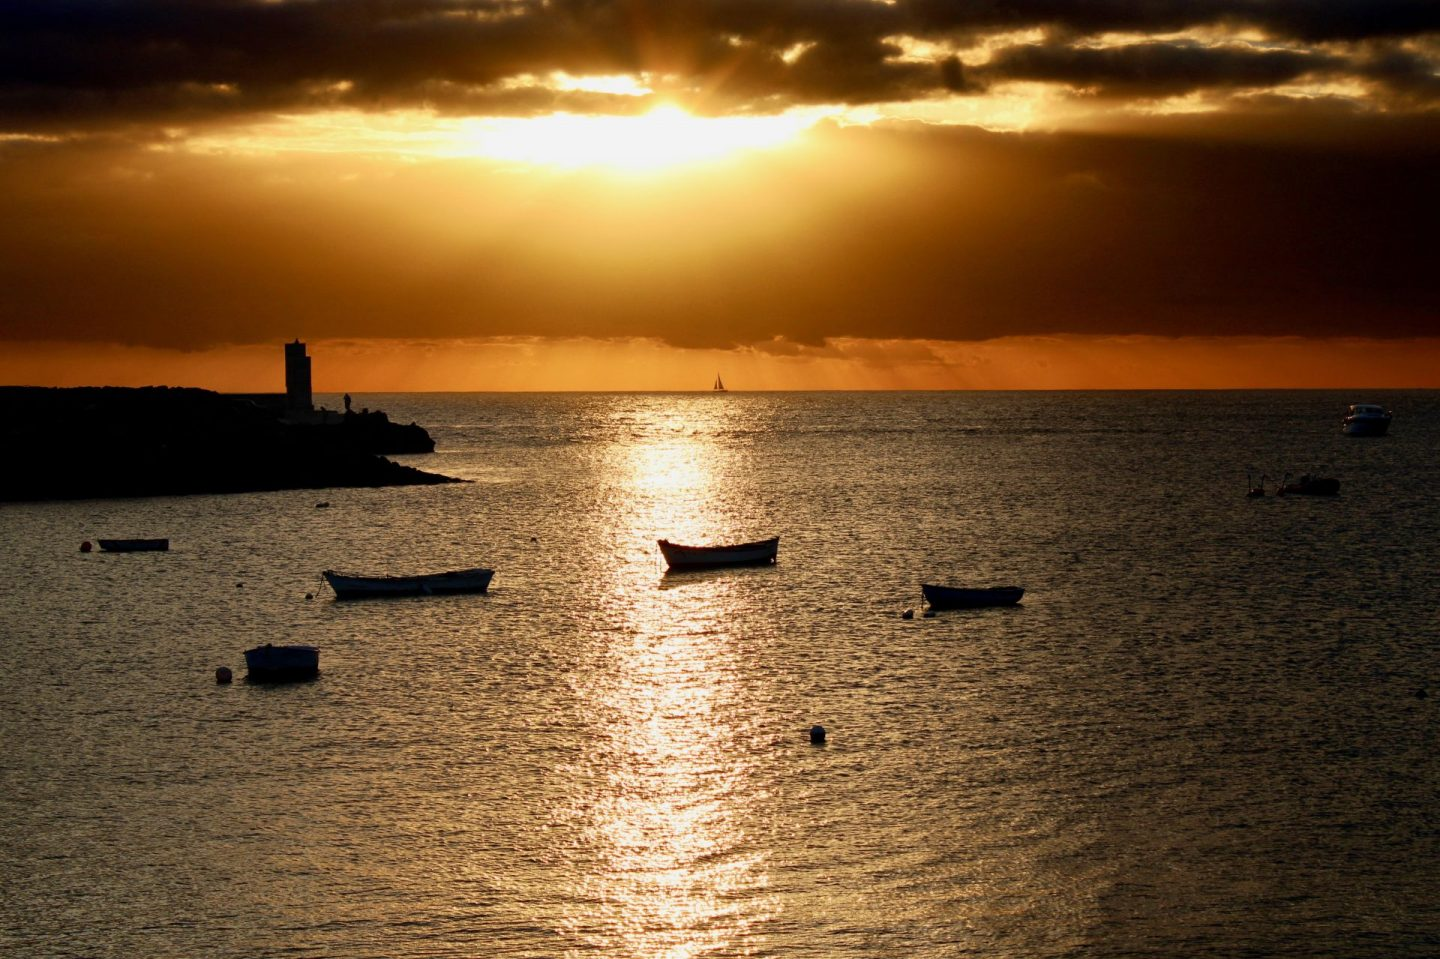 best tapas restaurants playa blanca lanzarote - a sunset over the sea admired from the marina